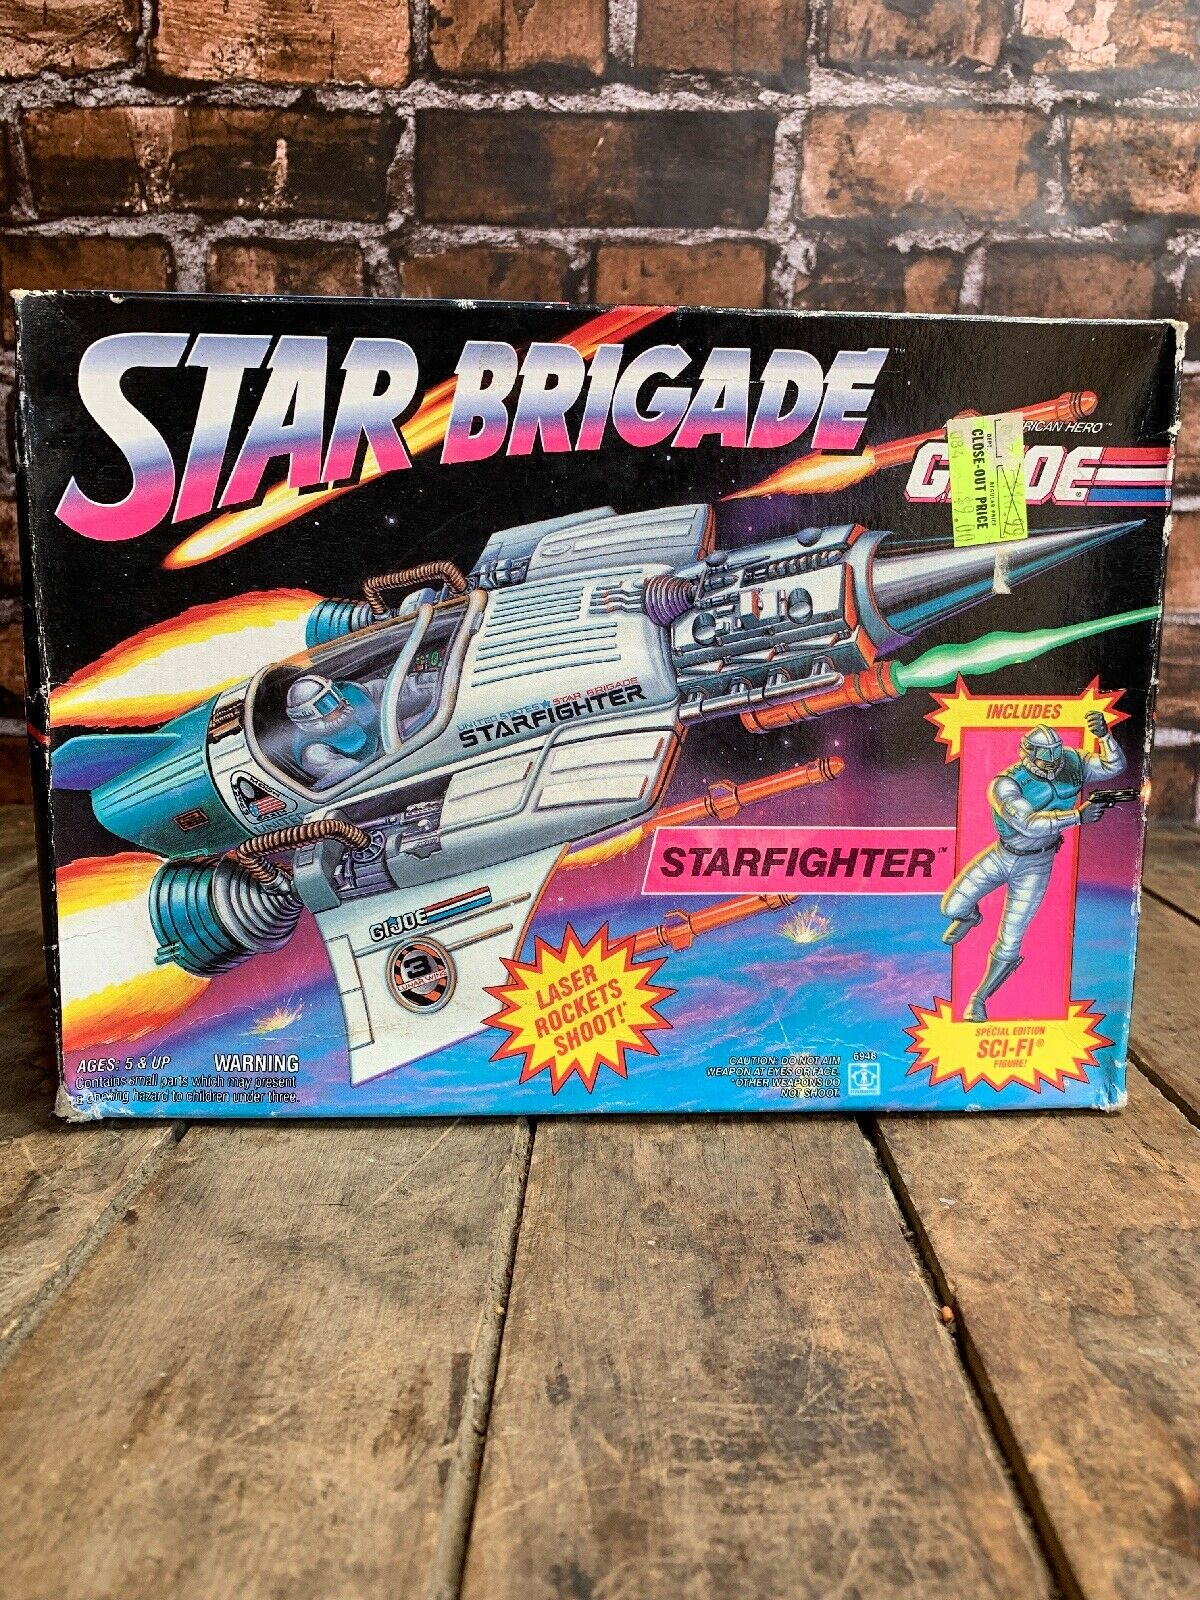 GI Joe Star Birgade Starfighter 1993 MIB SEALED   Original Hasbro Box ARAH